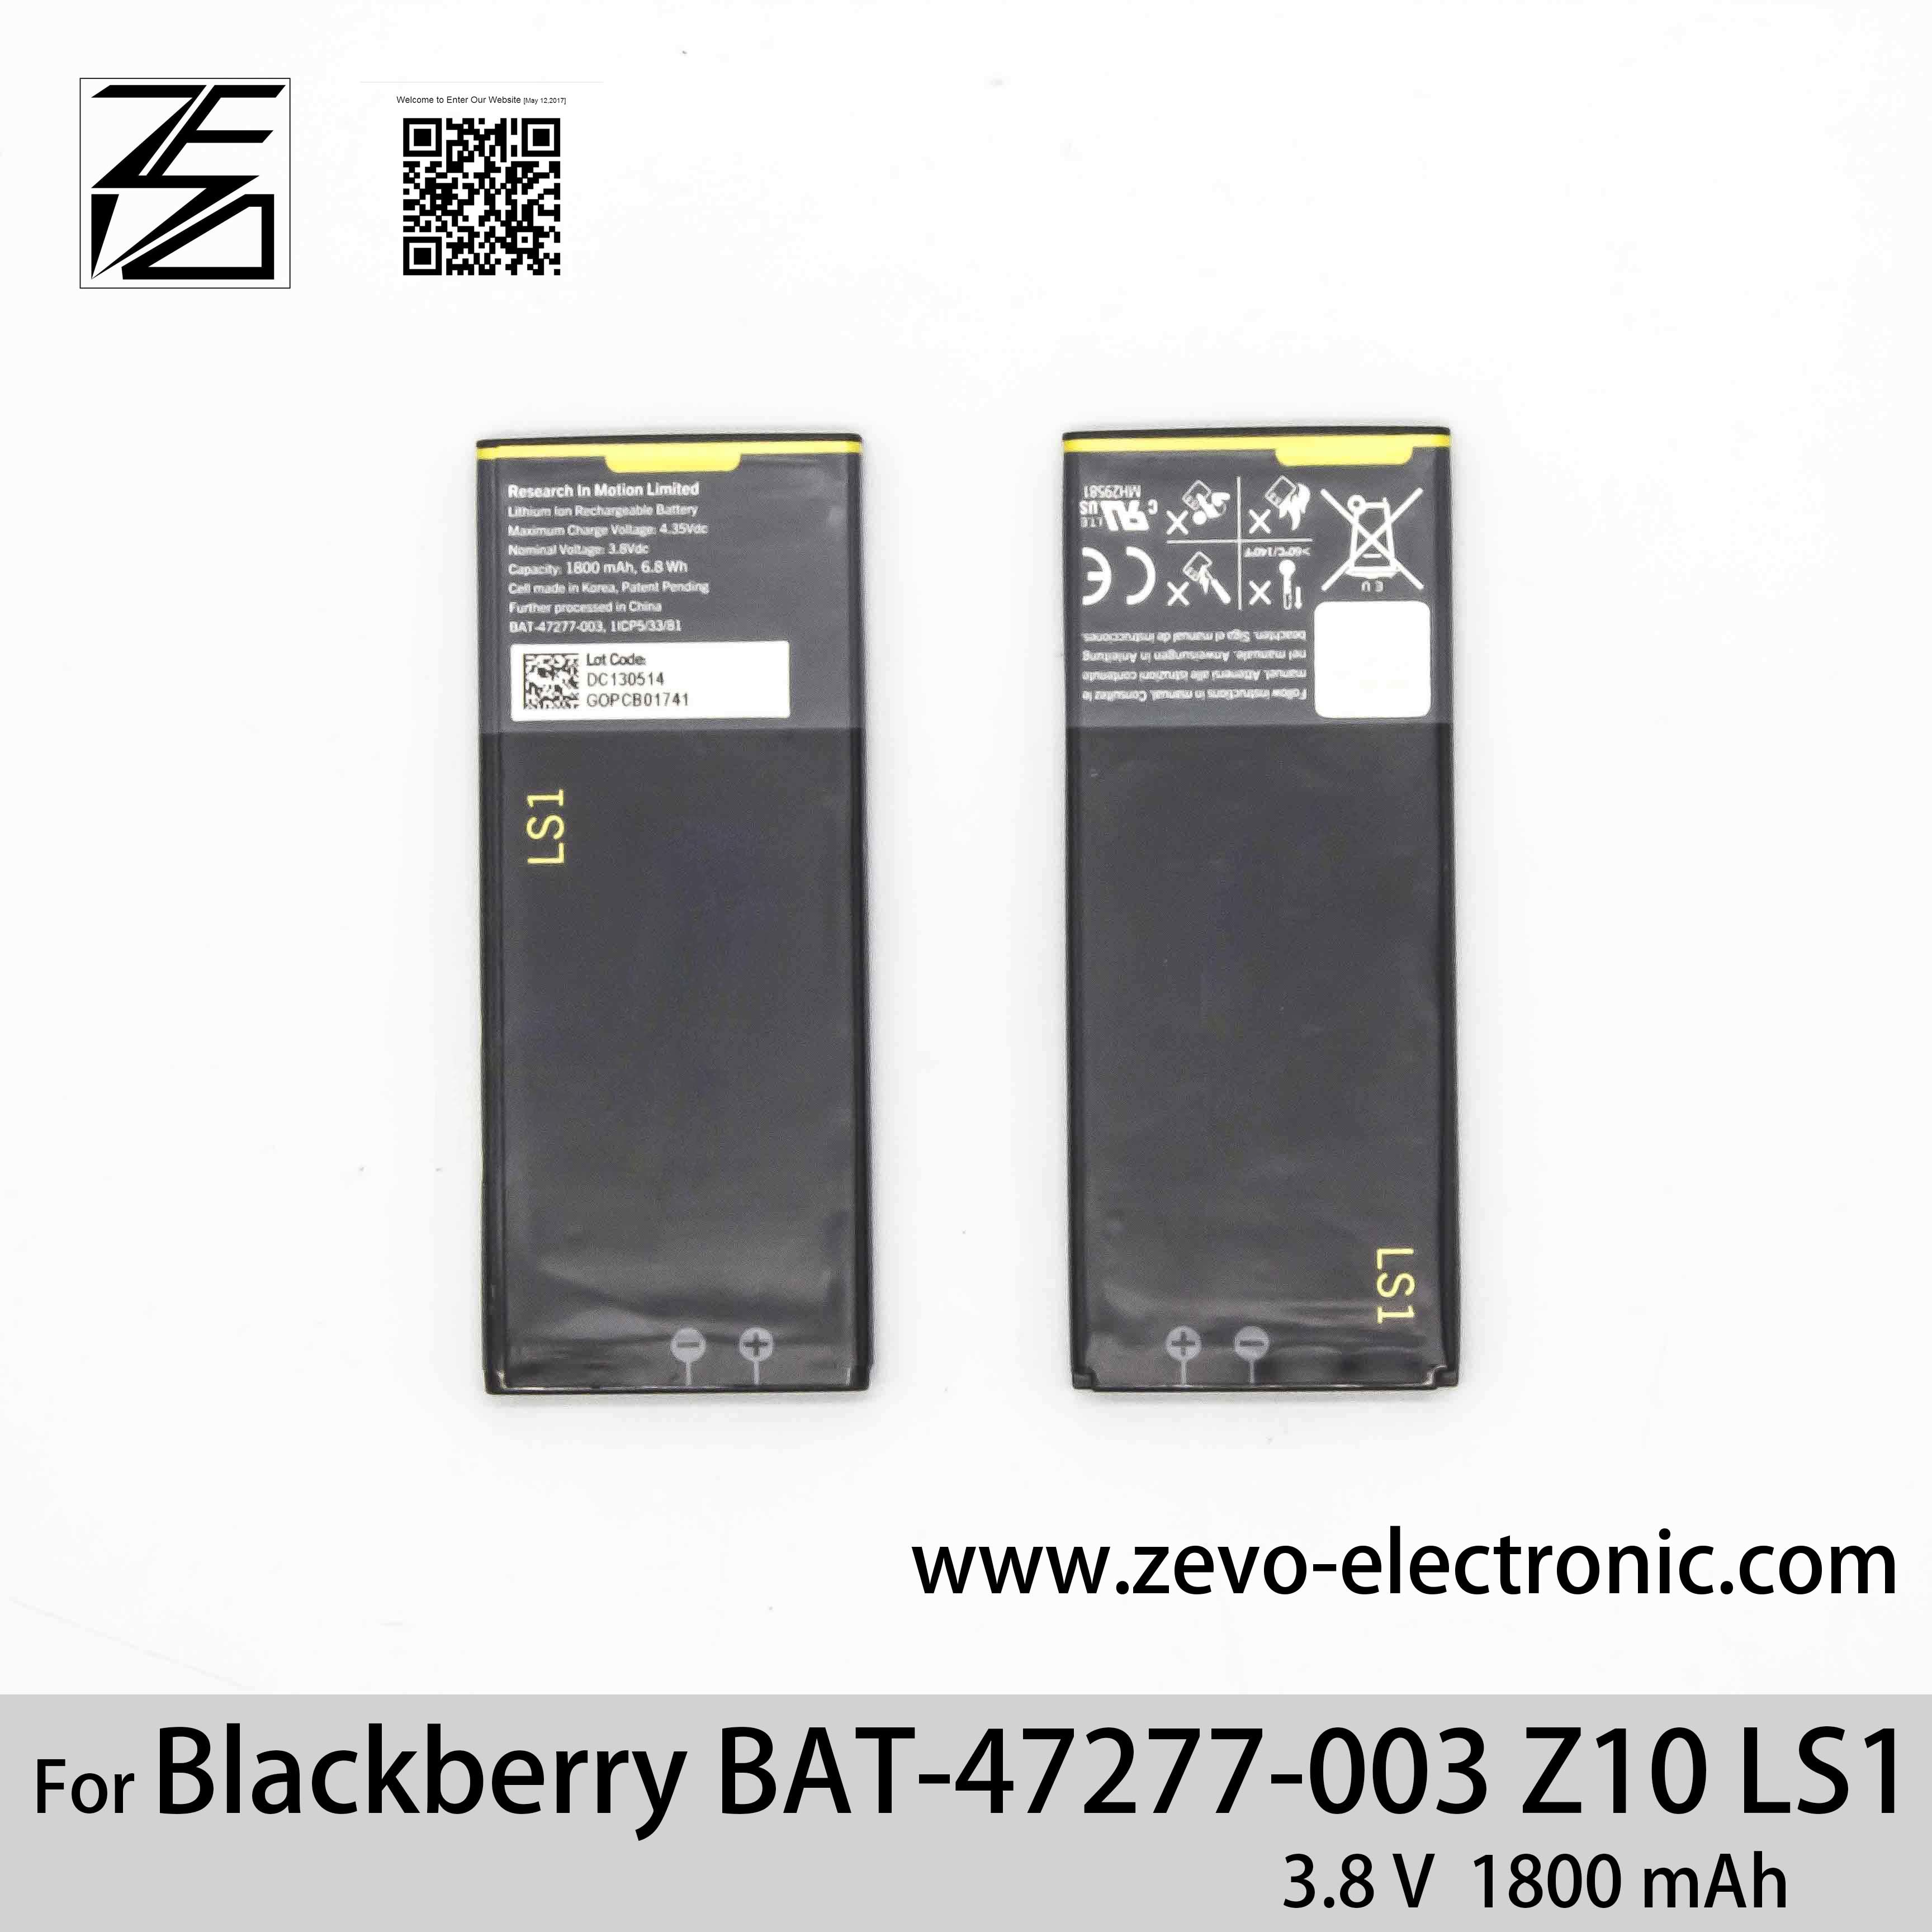 China Original Mobile Phone Battery for Blackberry Z10 Bat-47277-003 Ls1 - China Battery, Mobile Phone Battery Manufacturer